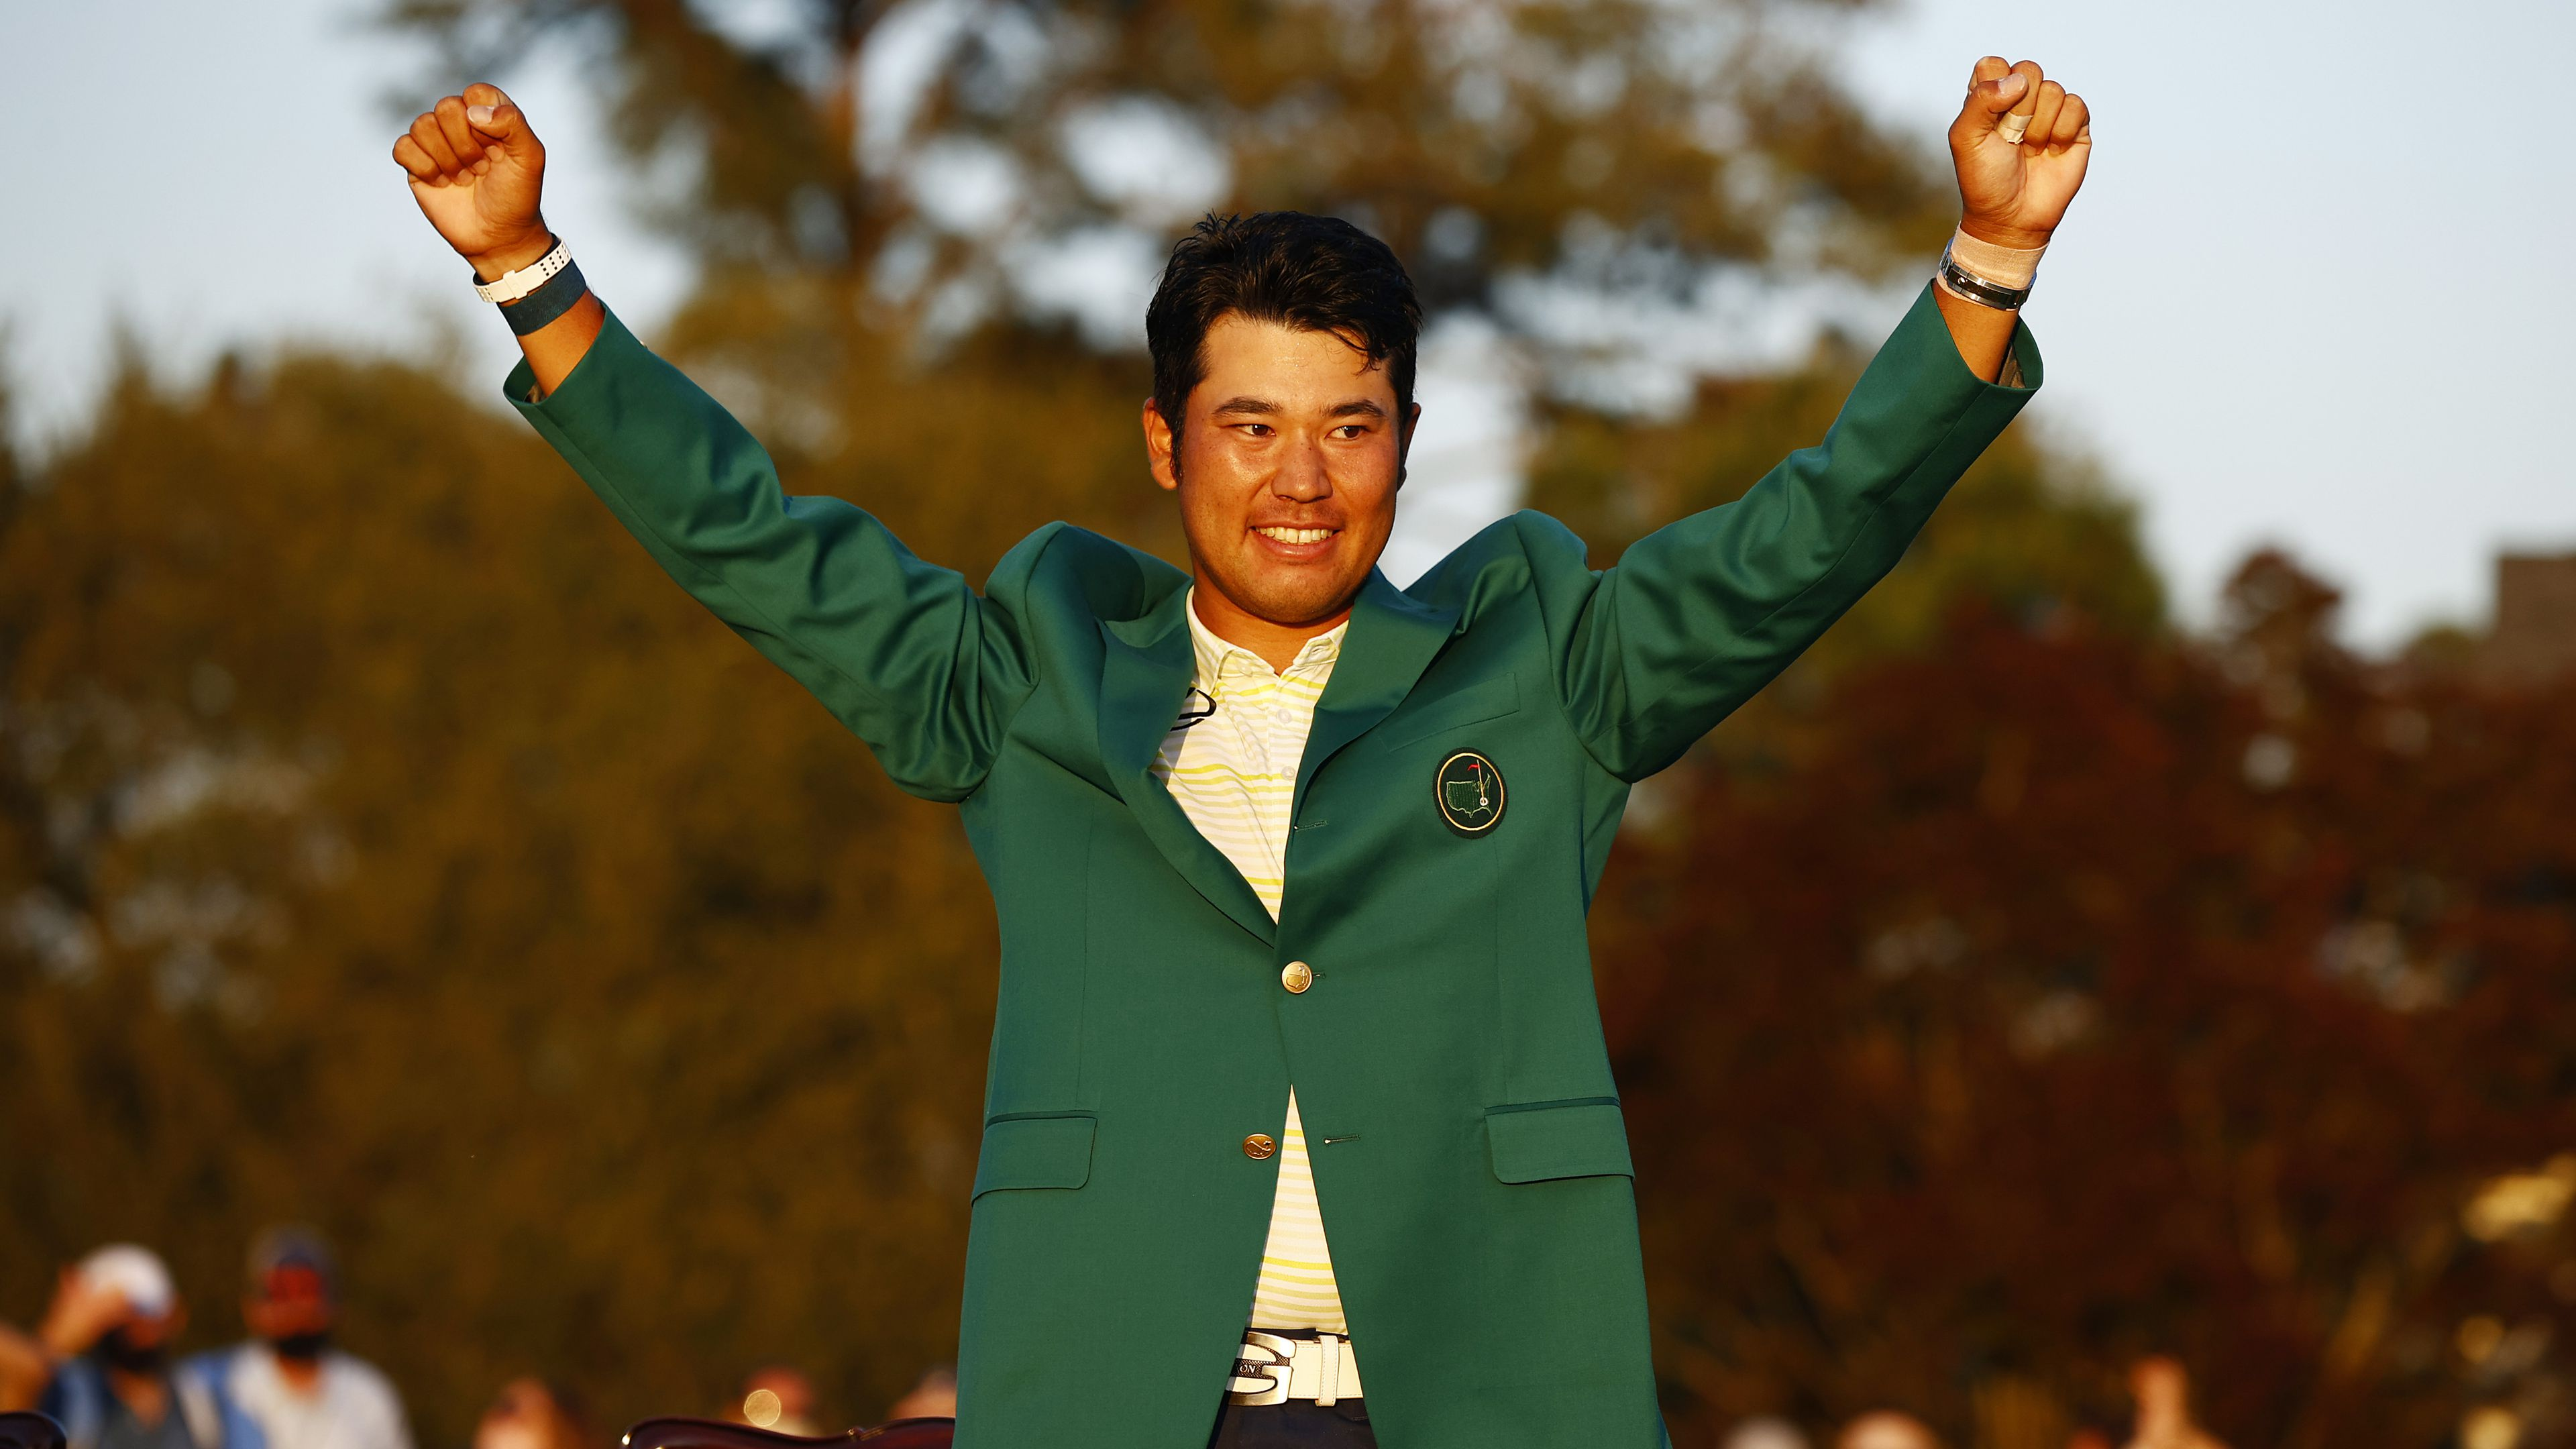 Masters winner Hideki Matsuyama gives 'huge boost' to 10 million golfers